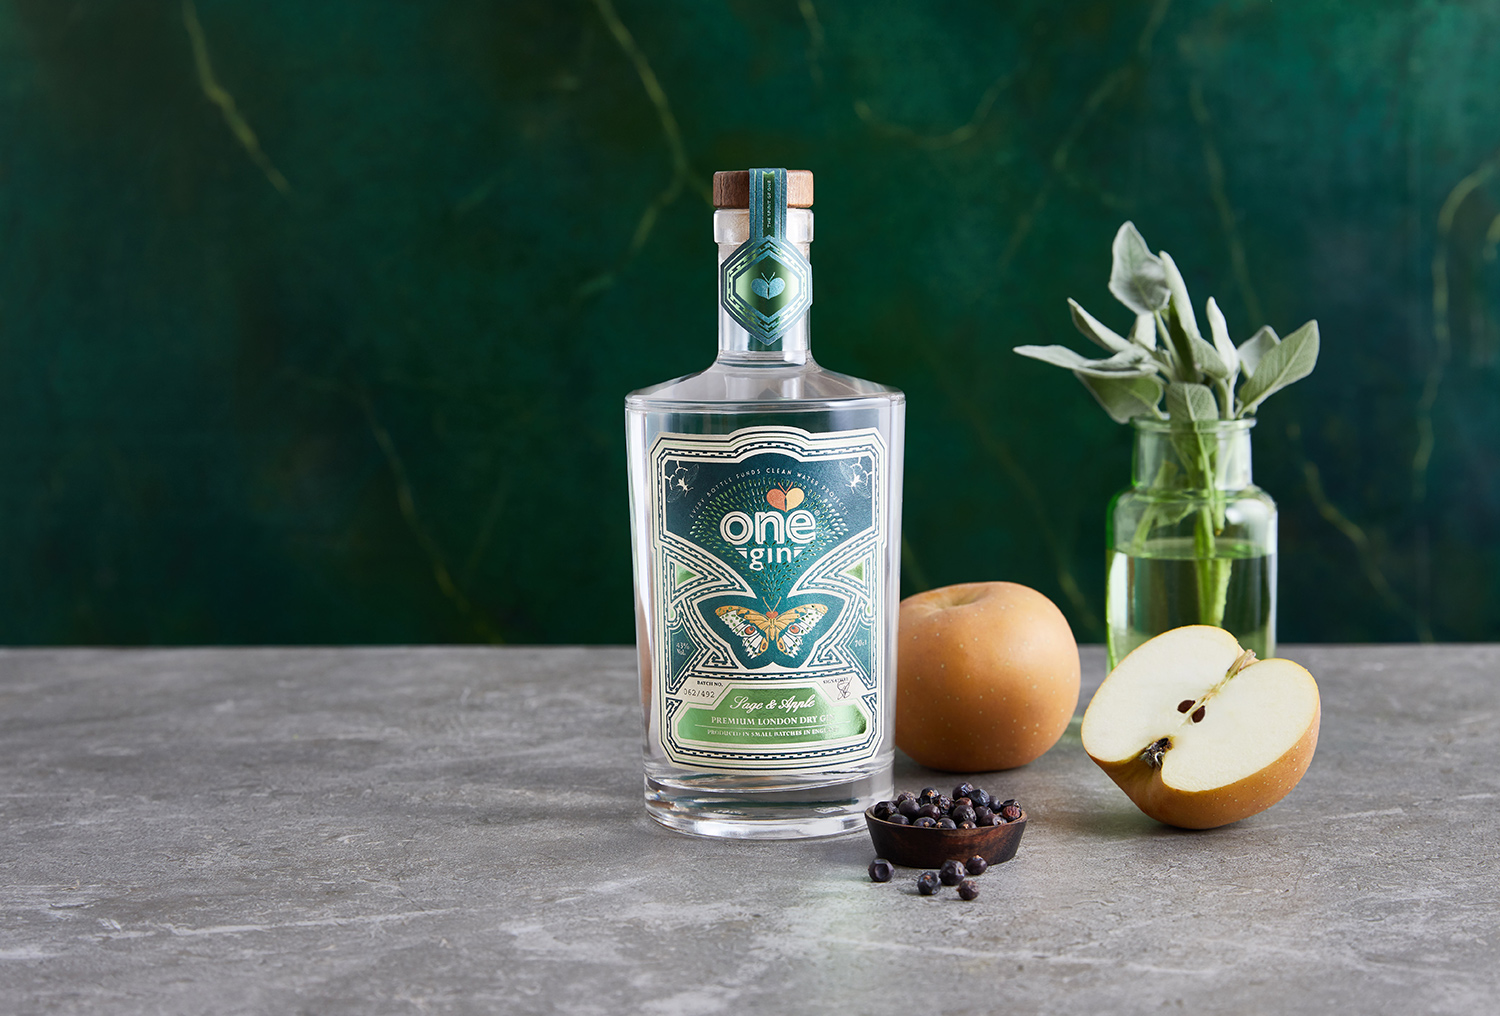 Solo shot of Gin bottle and fruit with dark stone background